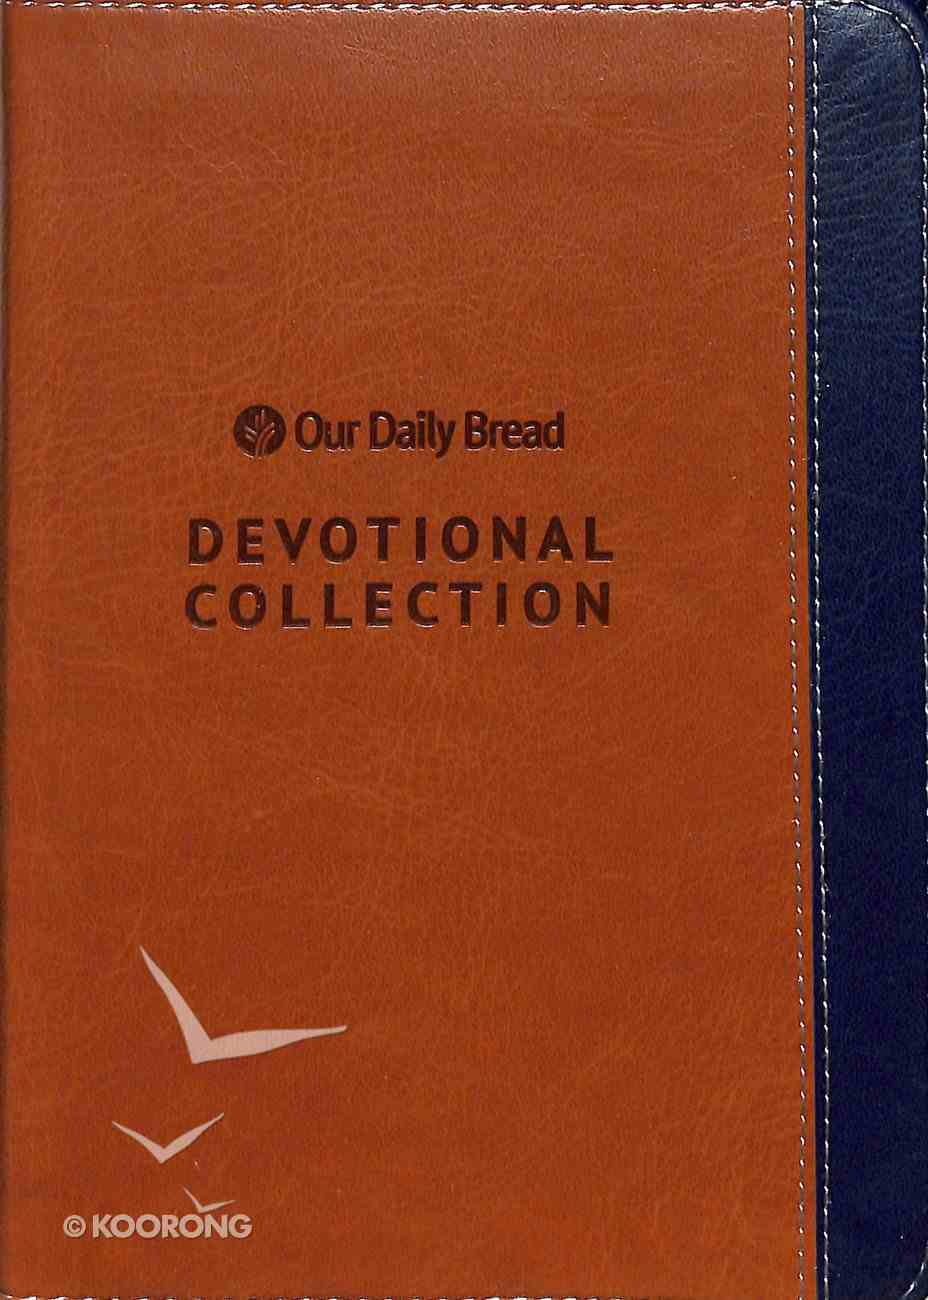 2019 Devotional Collection (Navy and Walnut) (Our Daily Bread Series) Imitation Leather